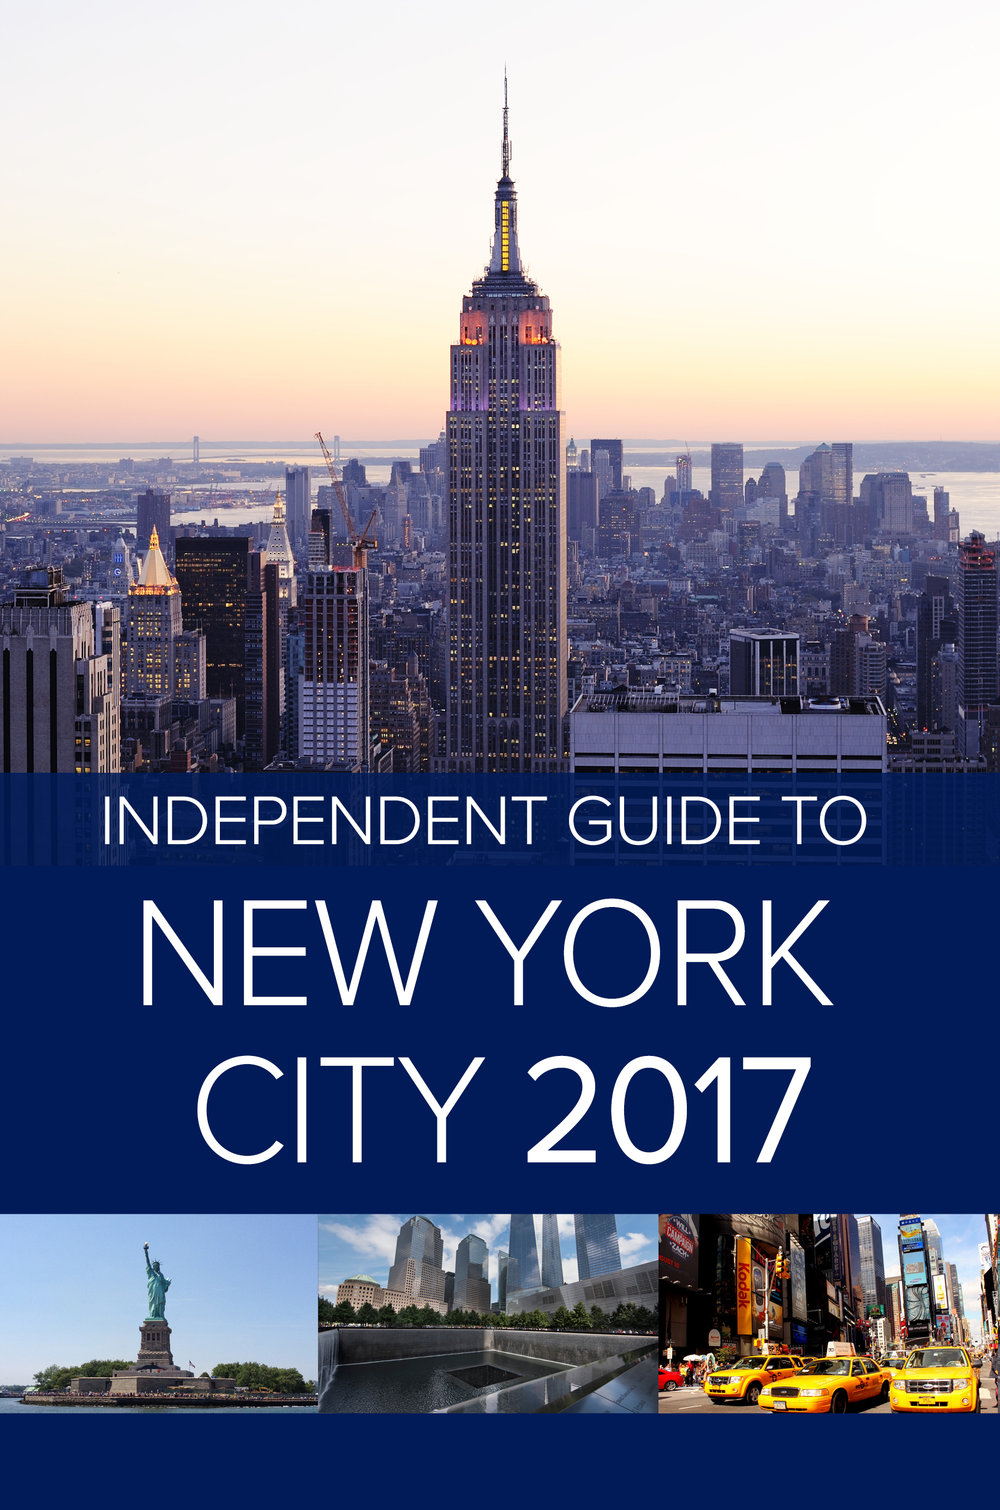 independenguidetonewyorkcity2017.jpg